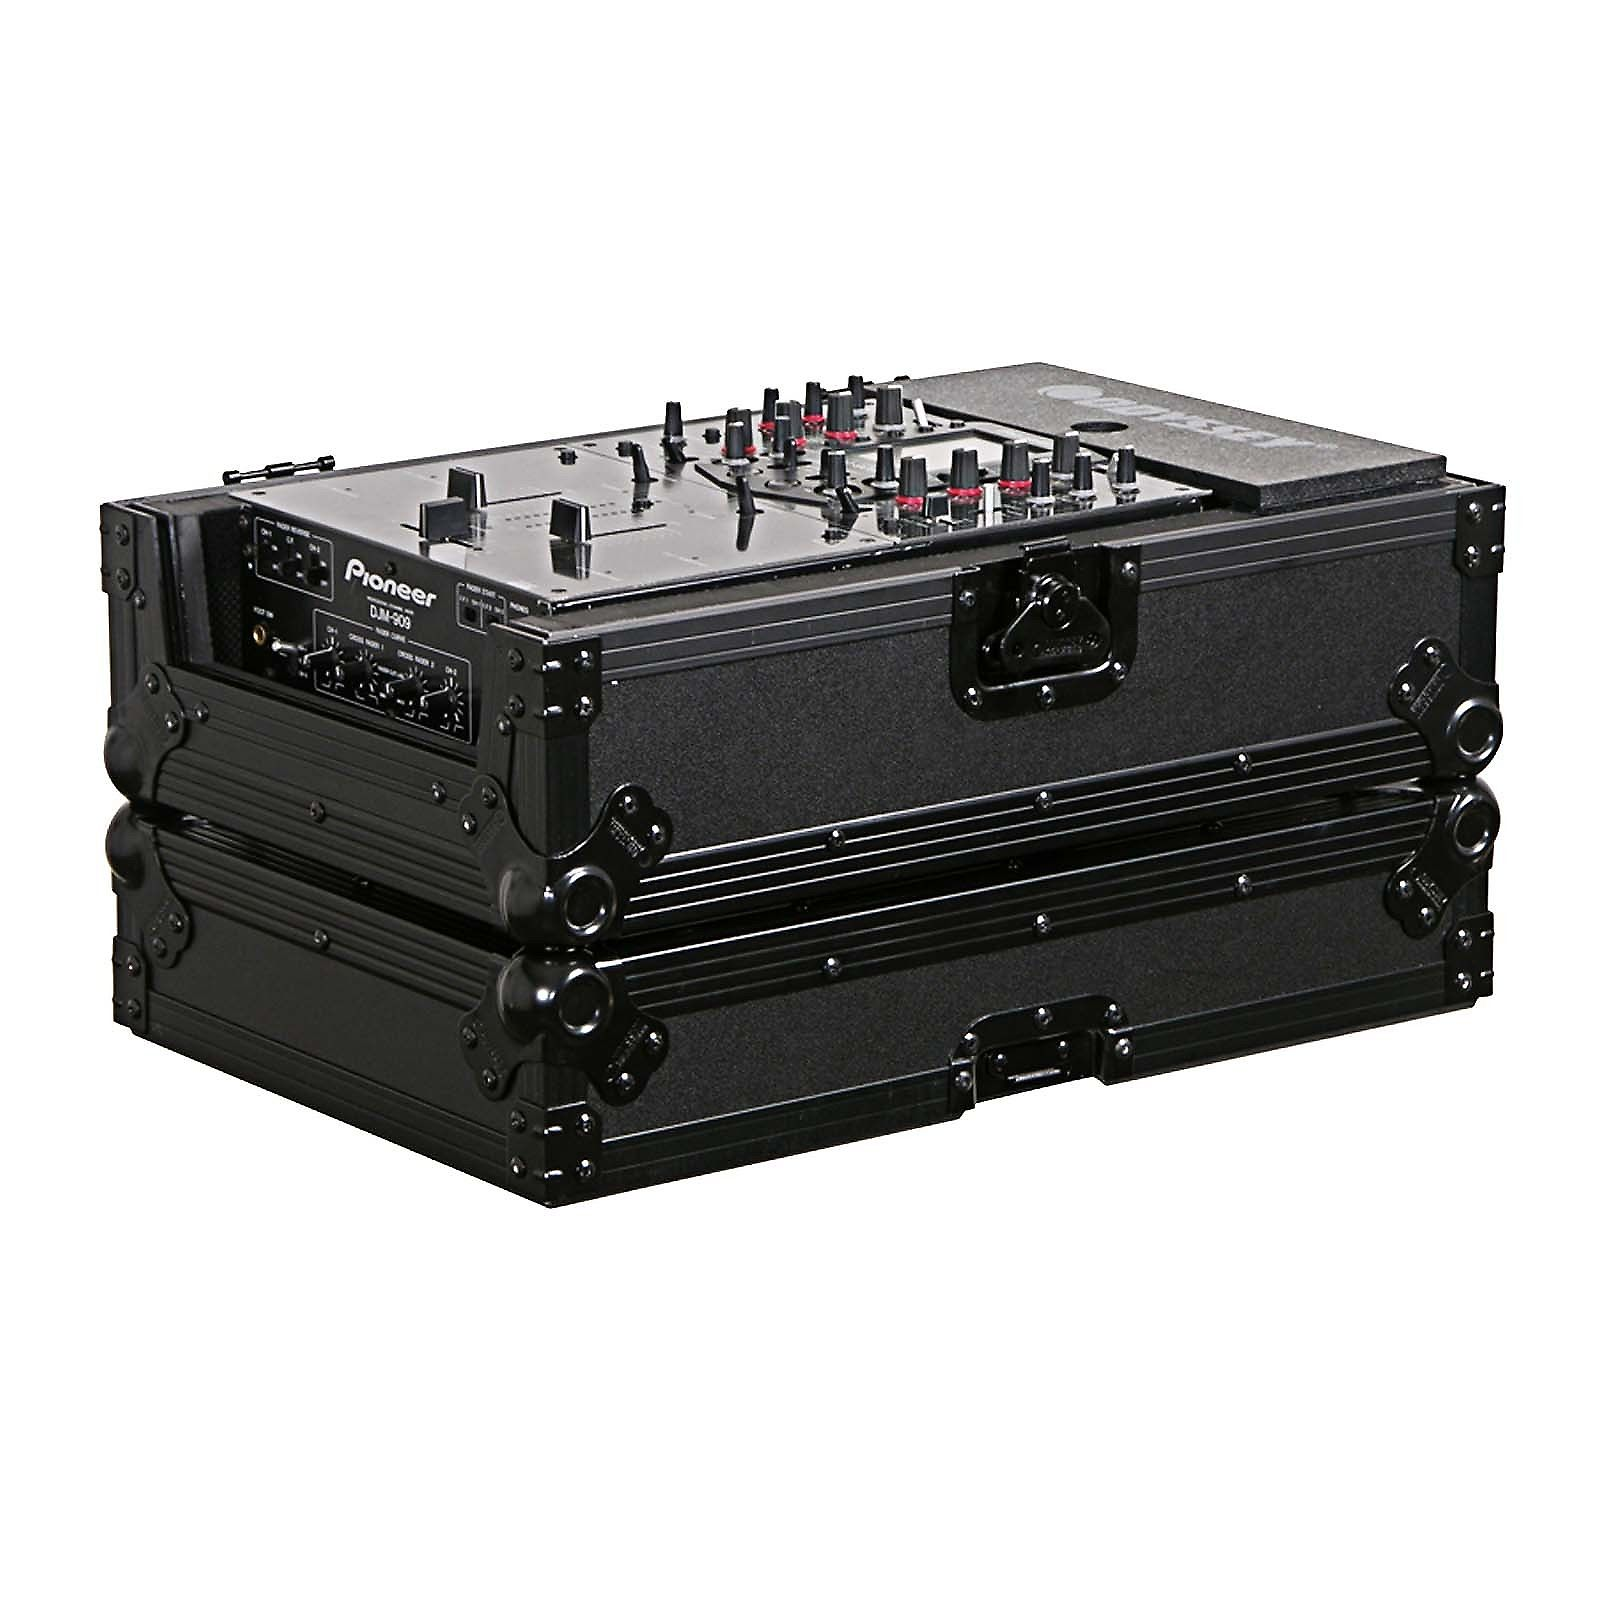 Odyssey Cases FZ12MIXBL New Black Label Flight Zone 12 Inch DJ Mixer Ata Case